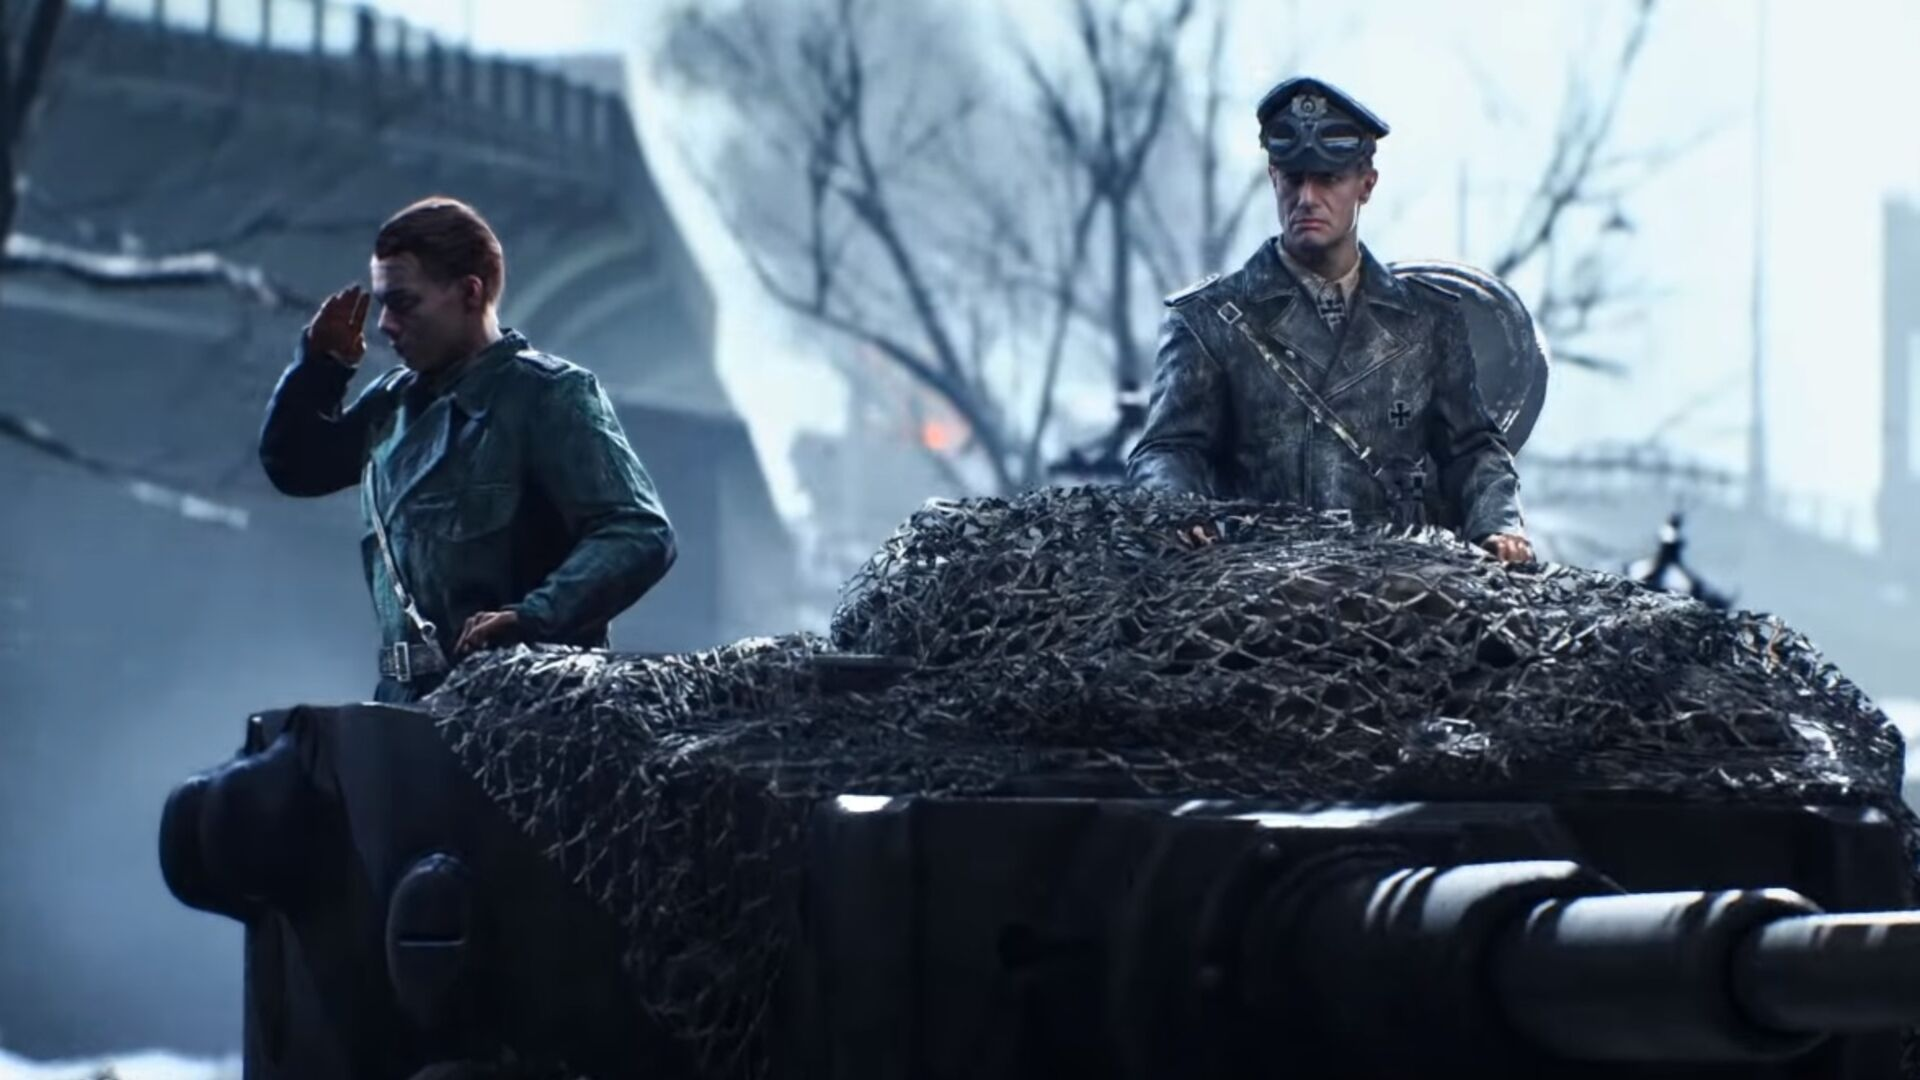 The Battlefield 5 campaign lets you play from the German perspective